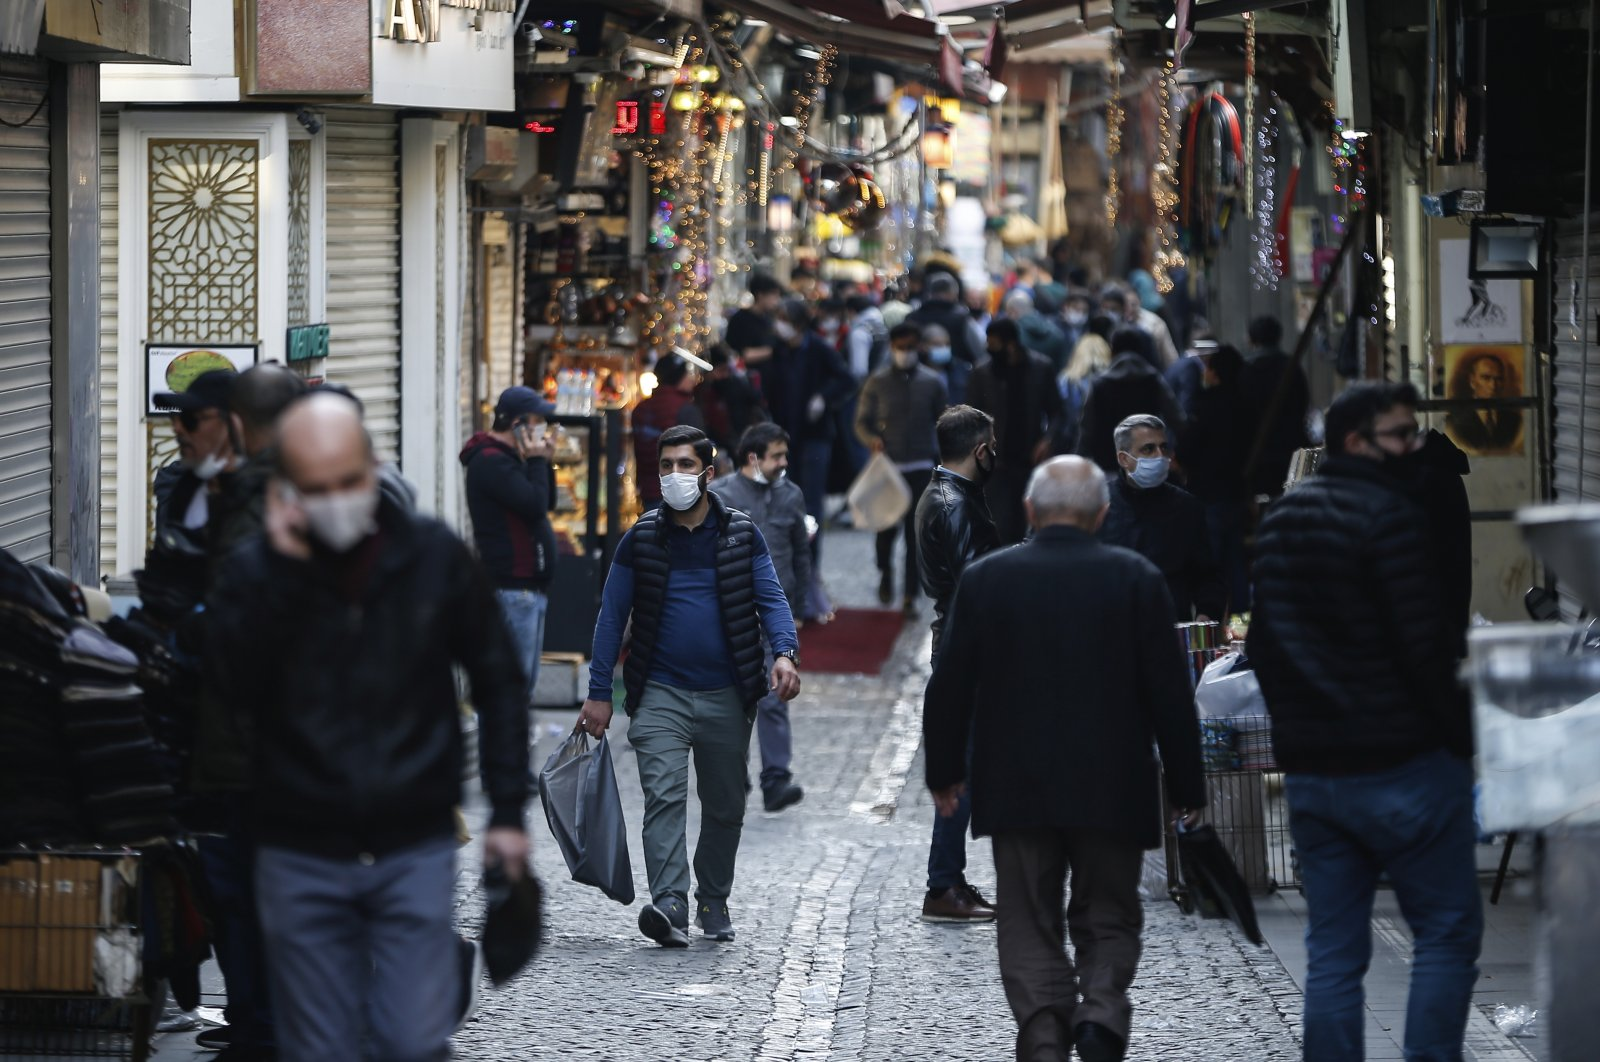 People, some wearing masks as a preventive measure against the spread of coronavirus, walk at Eminonu Bazaar in Istanbul, Friday, April 17, 2020. (AP Photo)